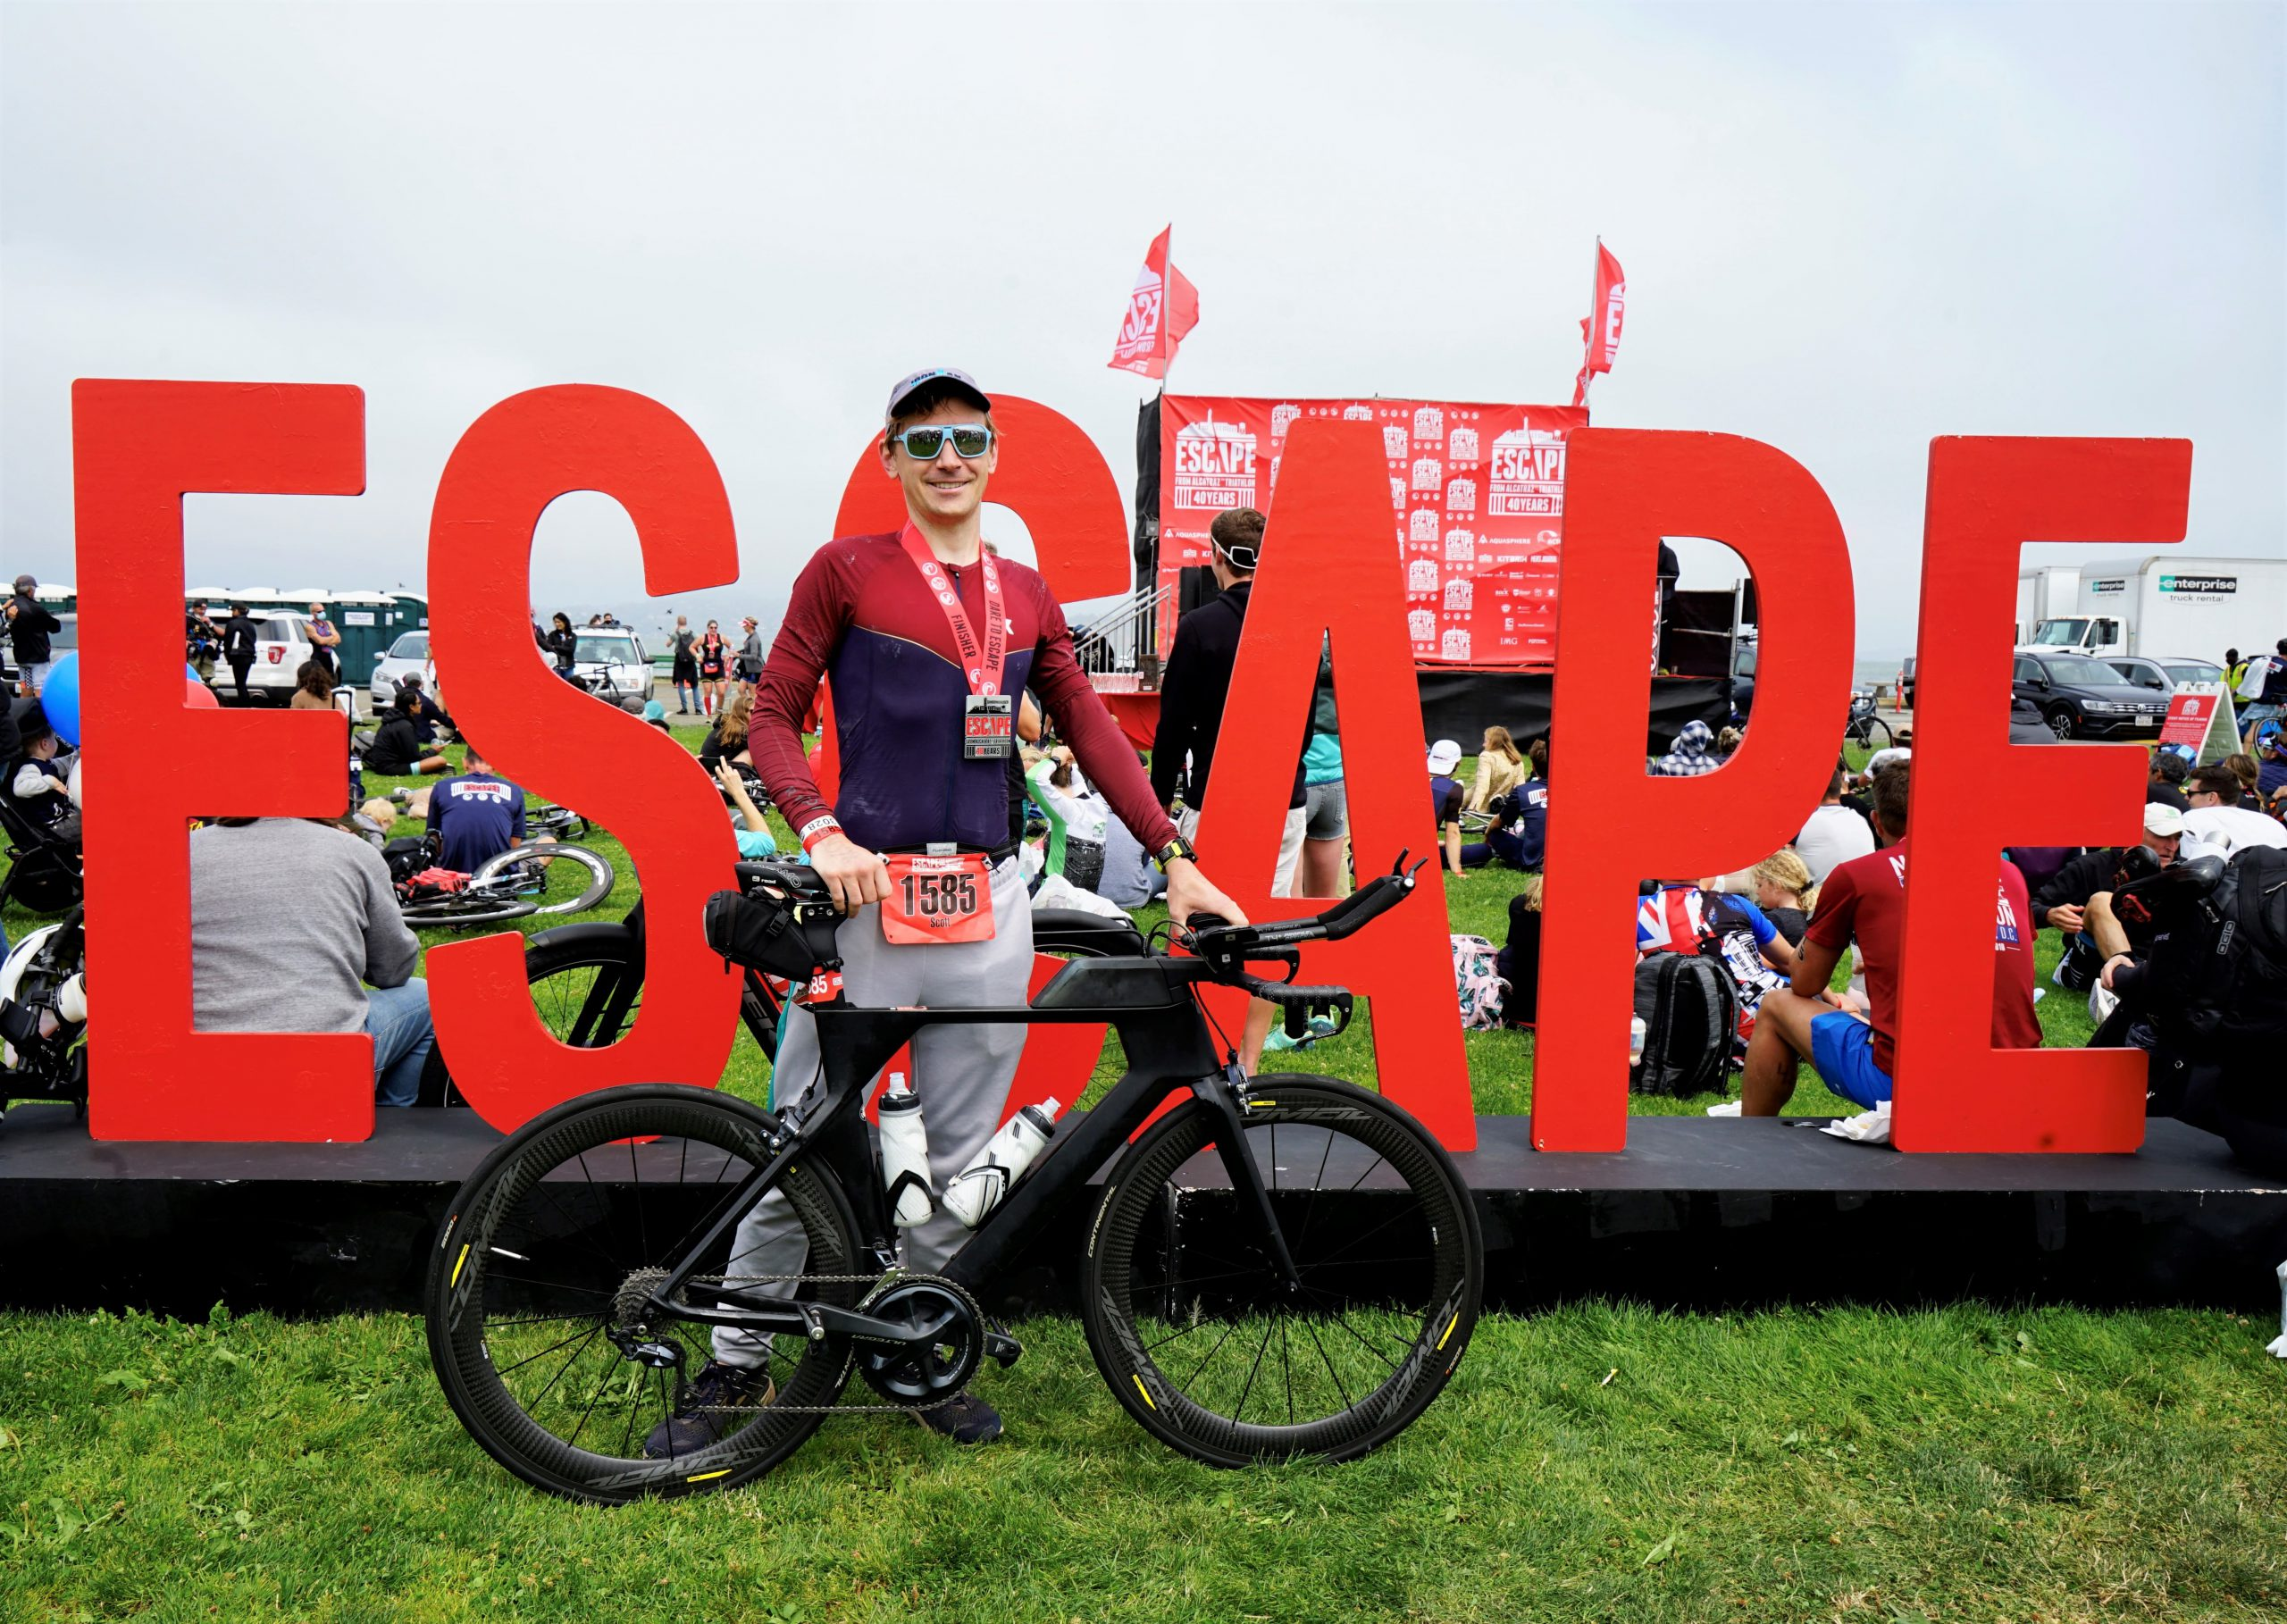 Scott Grubb stands behind a giant escape sign with his racing bike after competing in the Escape from Alcatraz Triathlon in San Francisco in August 2021